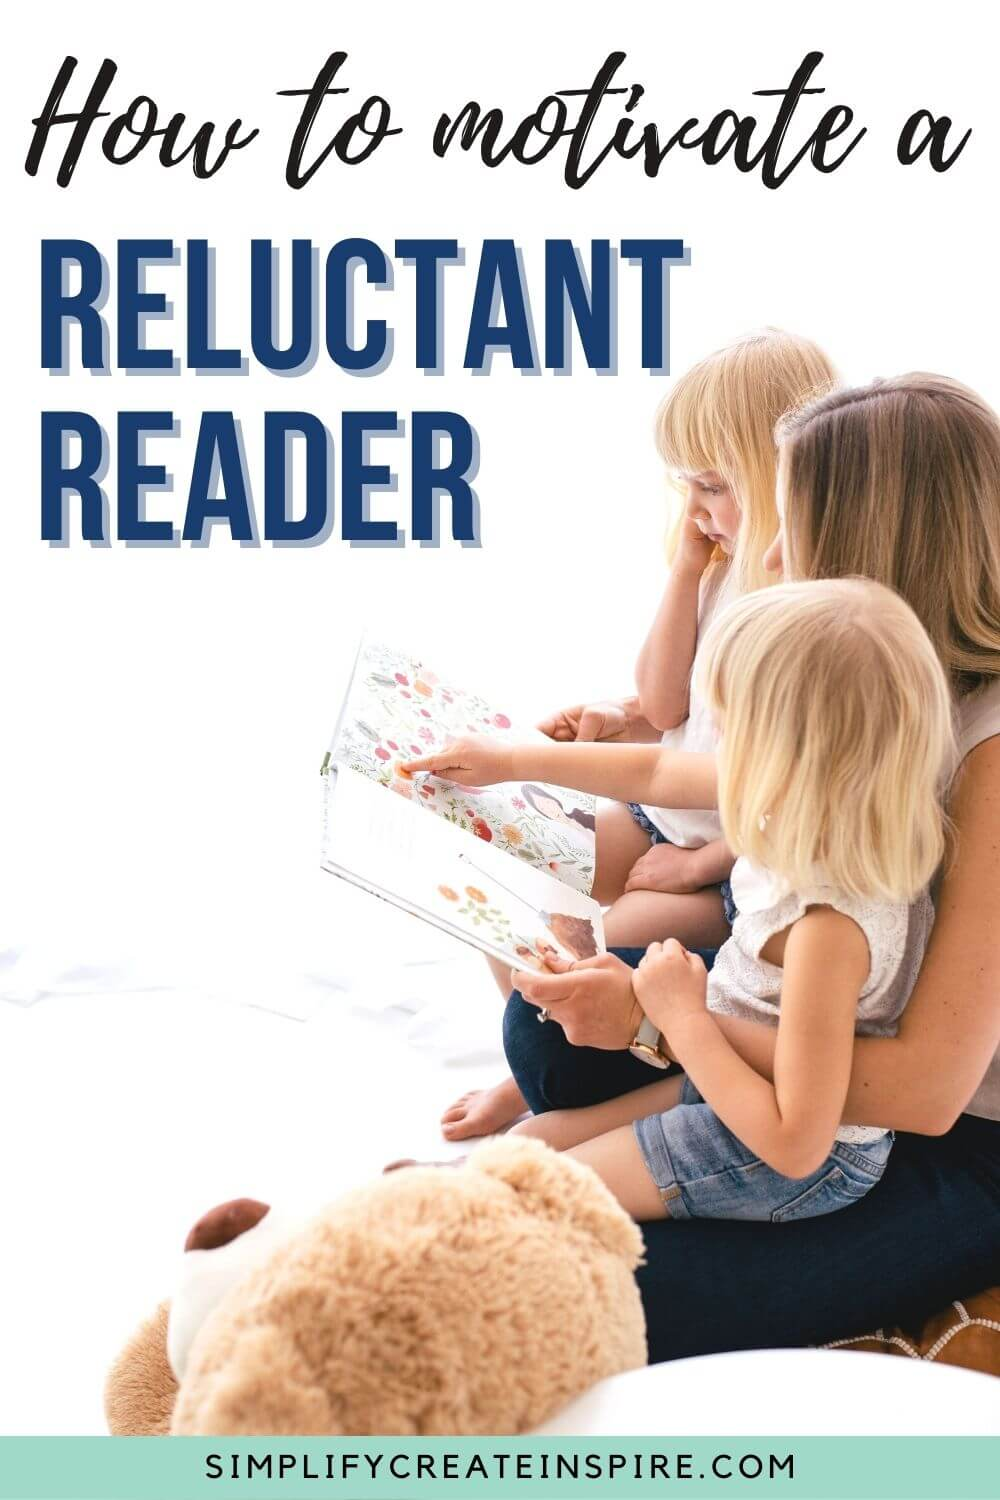 How to motivate your child to read more